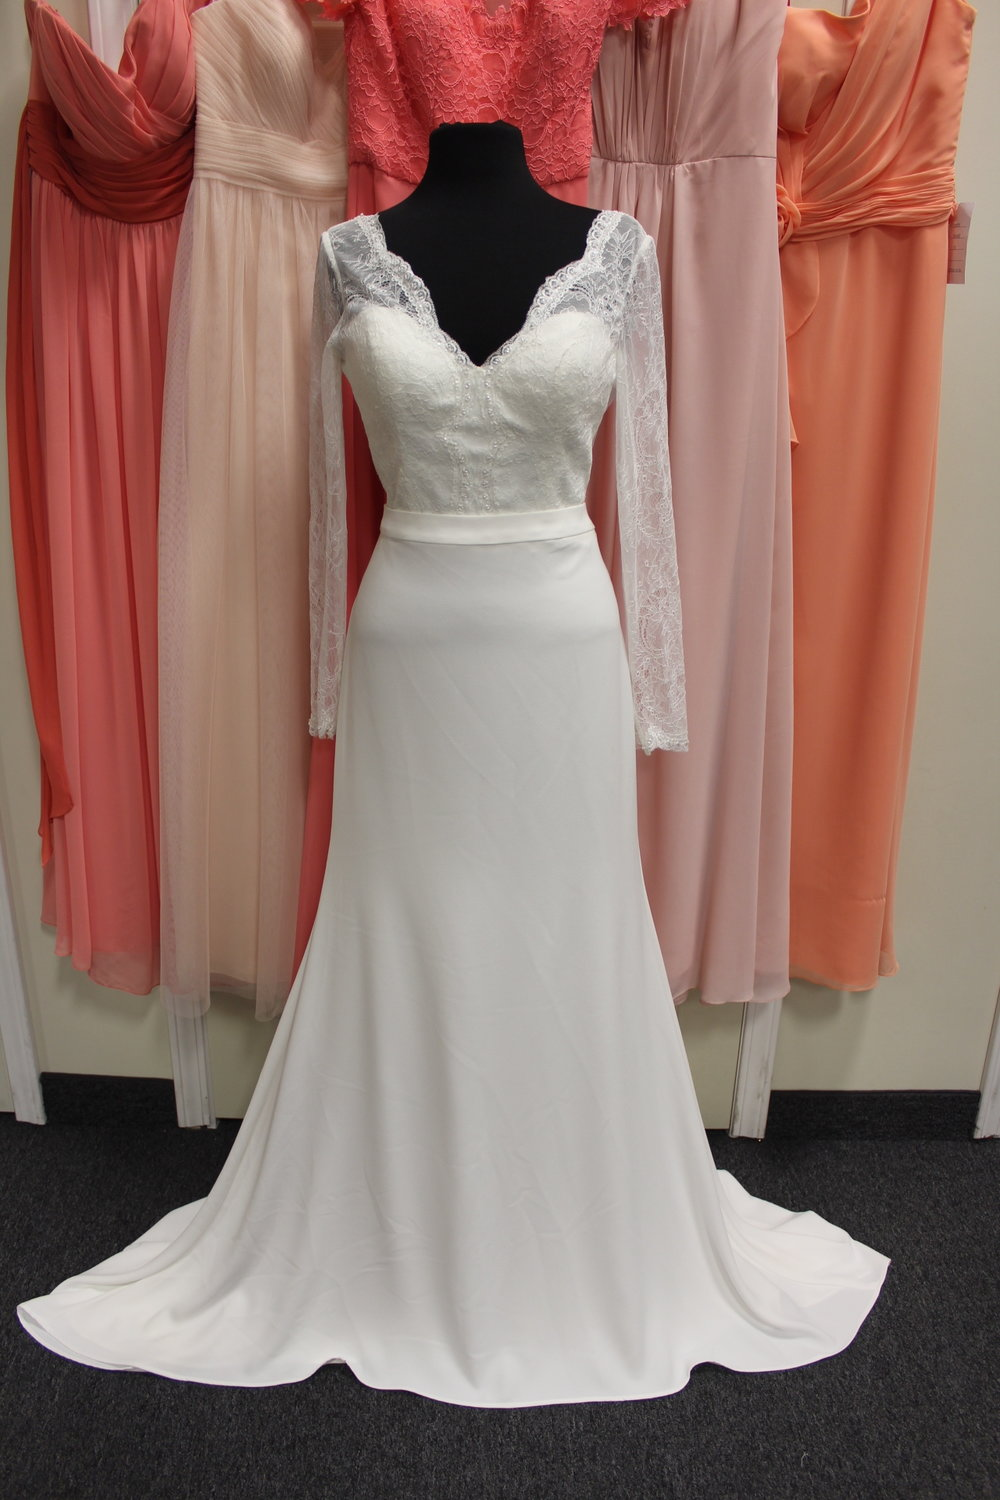 Lis Simon - 20852-32Location: WoodburySize: 12This dress is brand NEW!Original Retail Price: $1998OUR Price: $1302